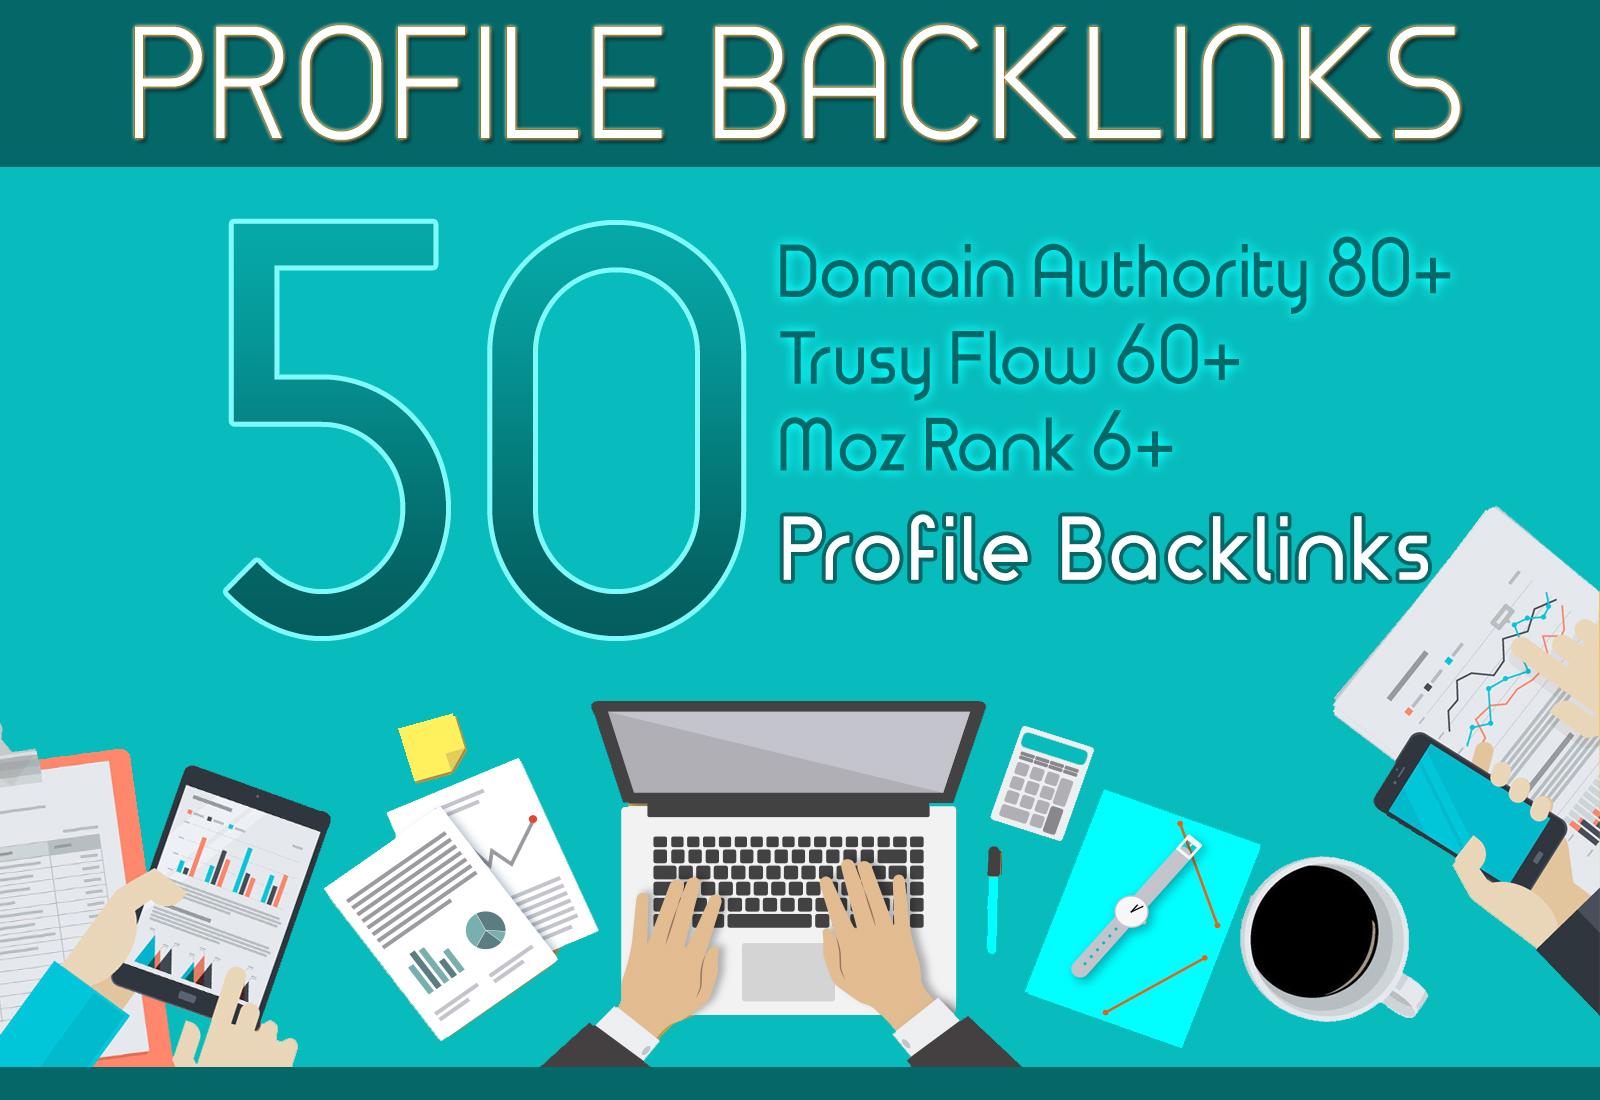 I will create 50 profile backlinks on high authority websites